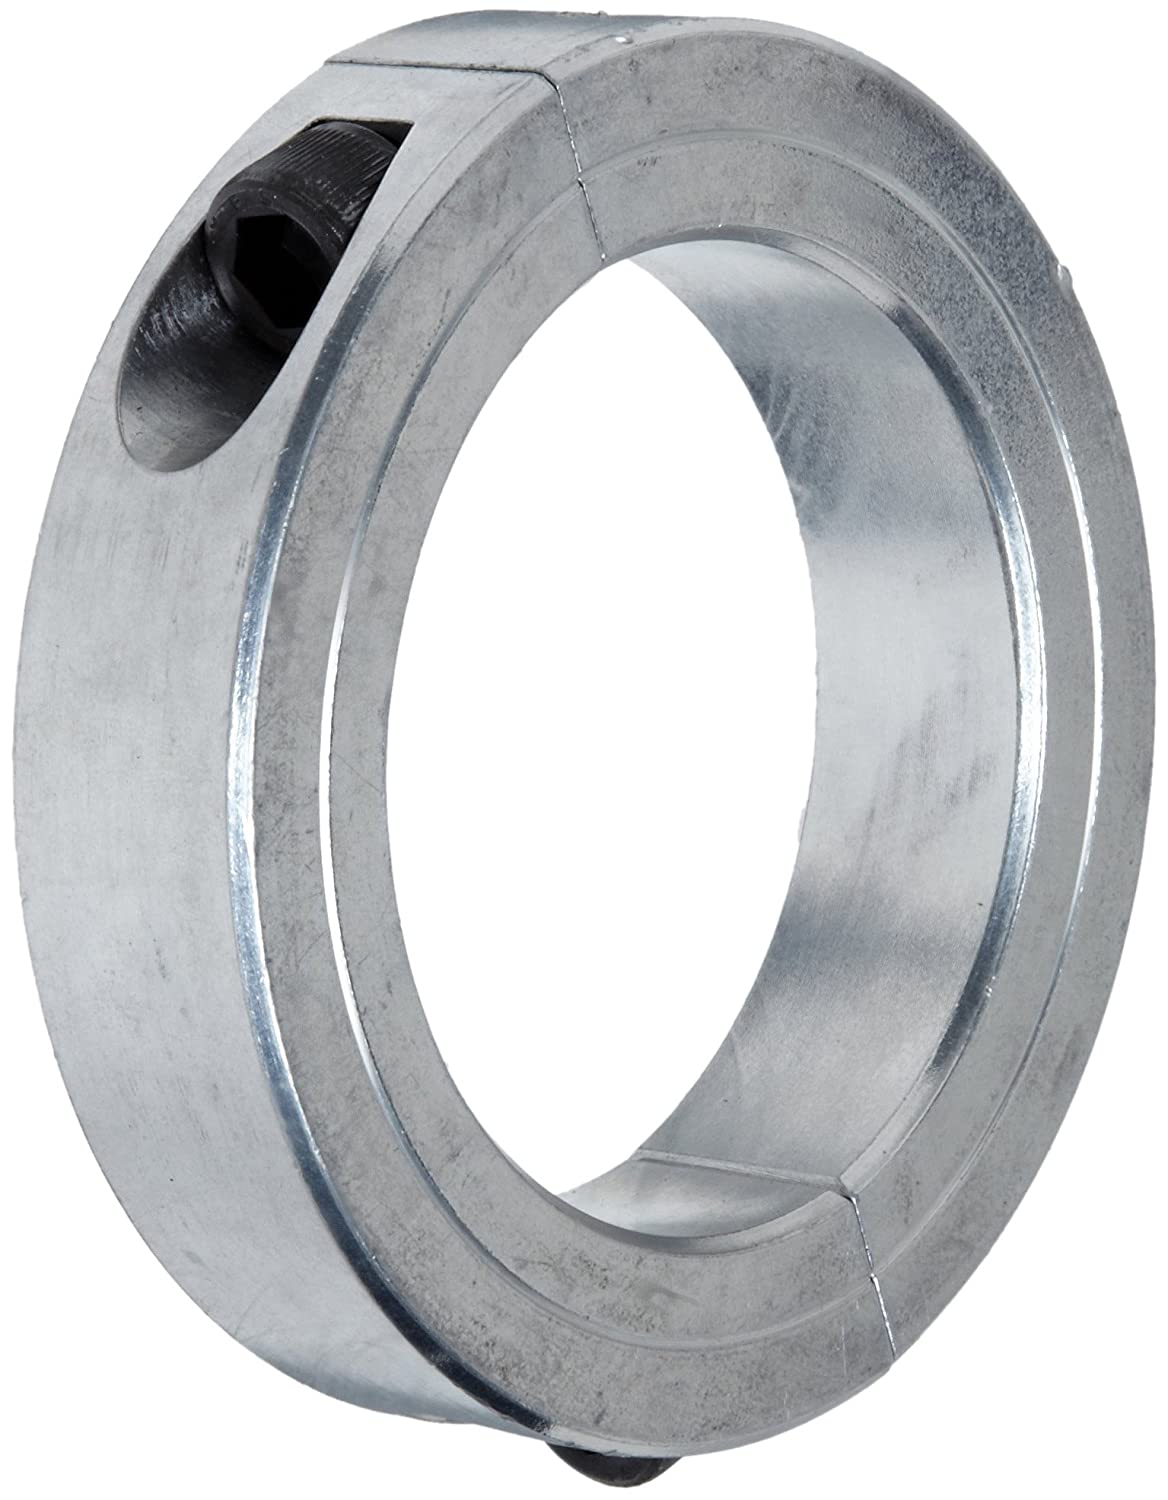 Climax metal c a aluminum two piece clamping collar